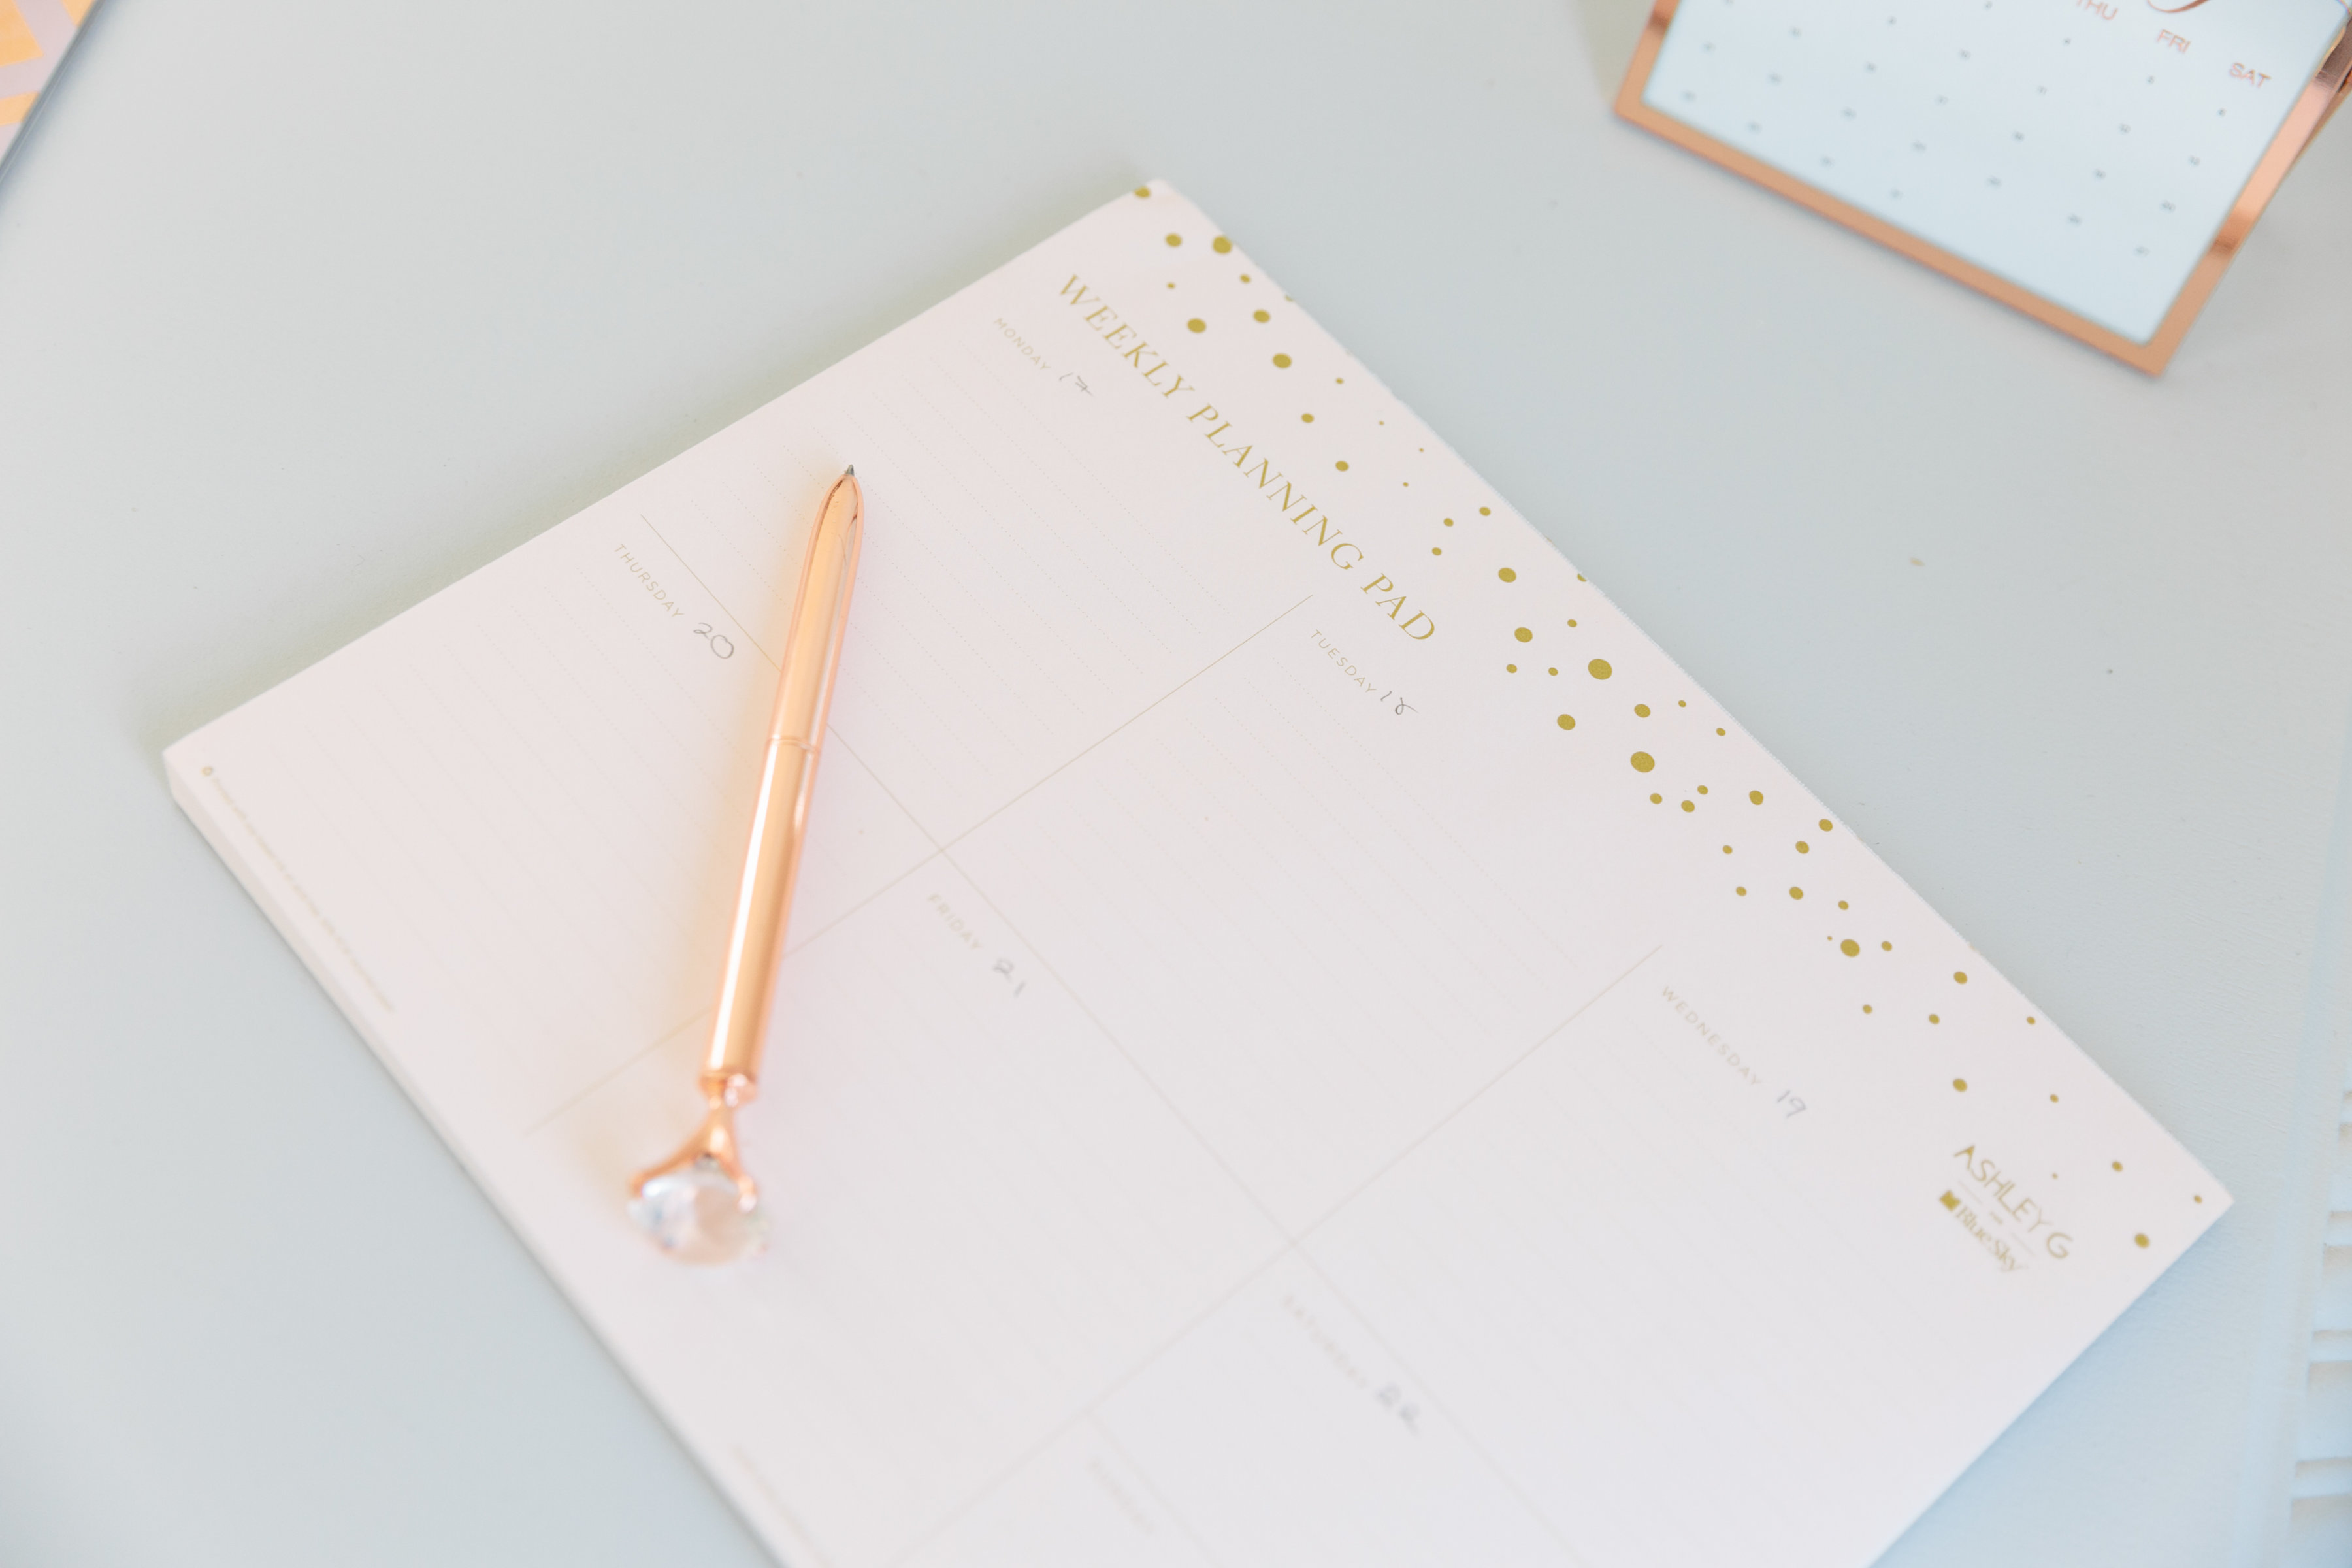 first steps to start planning your wedding susan la reau events